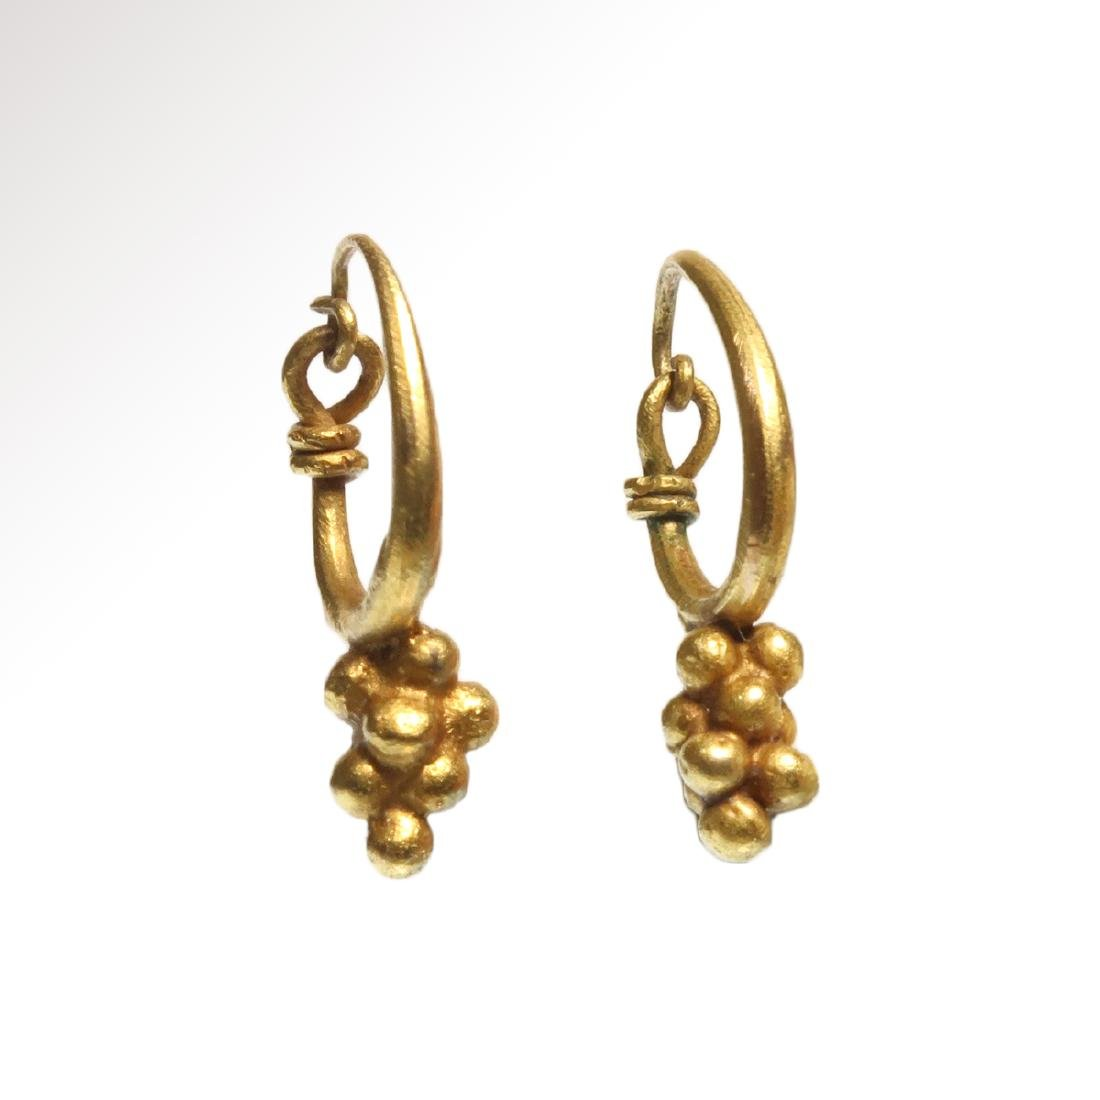 Roman Gold Earrings with Grape Drops, c. 1st - 3rd - 3